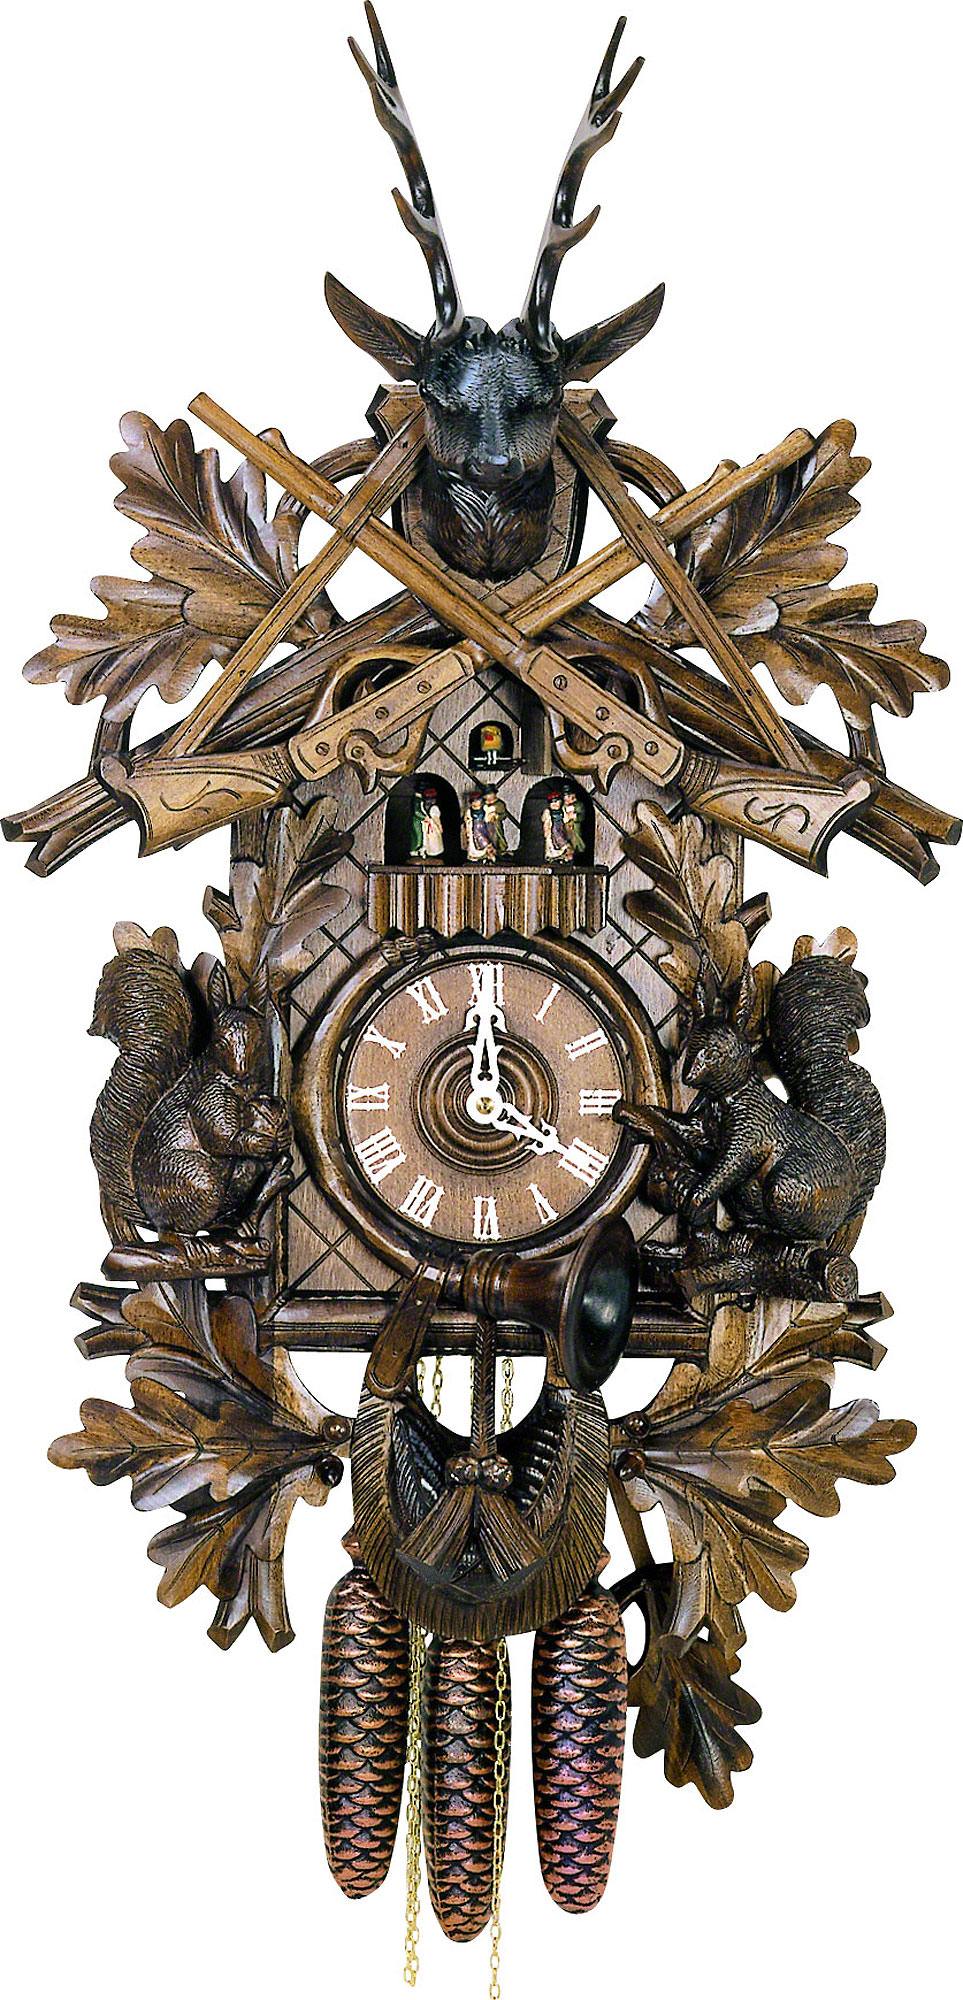 It s About Time Dating your Regula Cuckoo Clock Movement